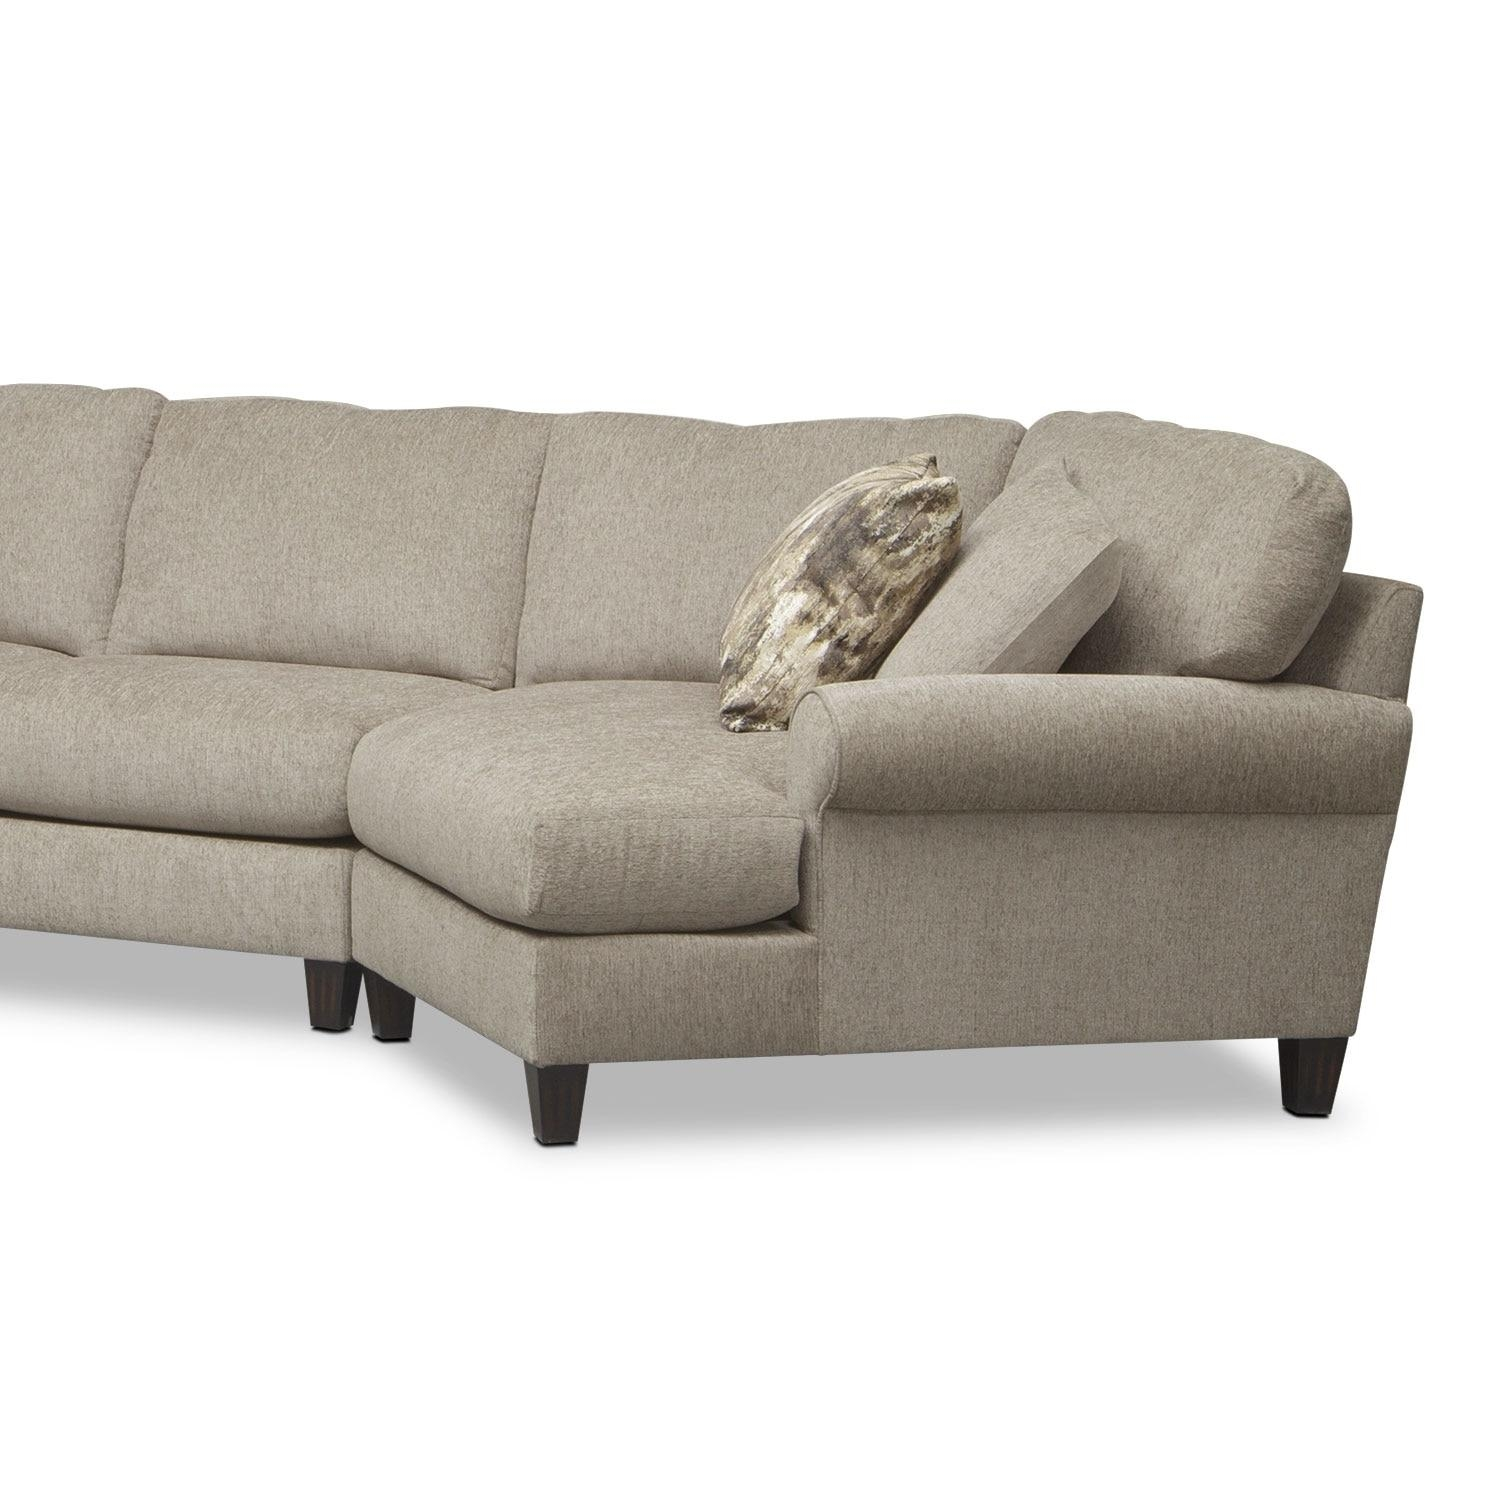 20 Best Ideas Sectional Sofa With Cuddler Chaise Sofa Ideas ~ Sectional Sofa With Cuddler